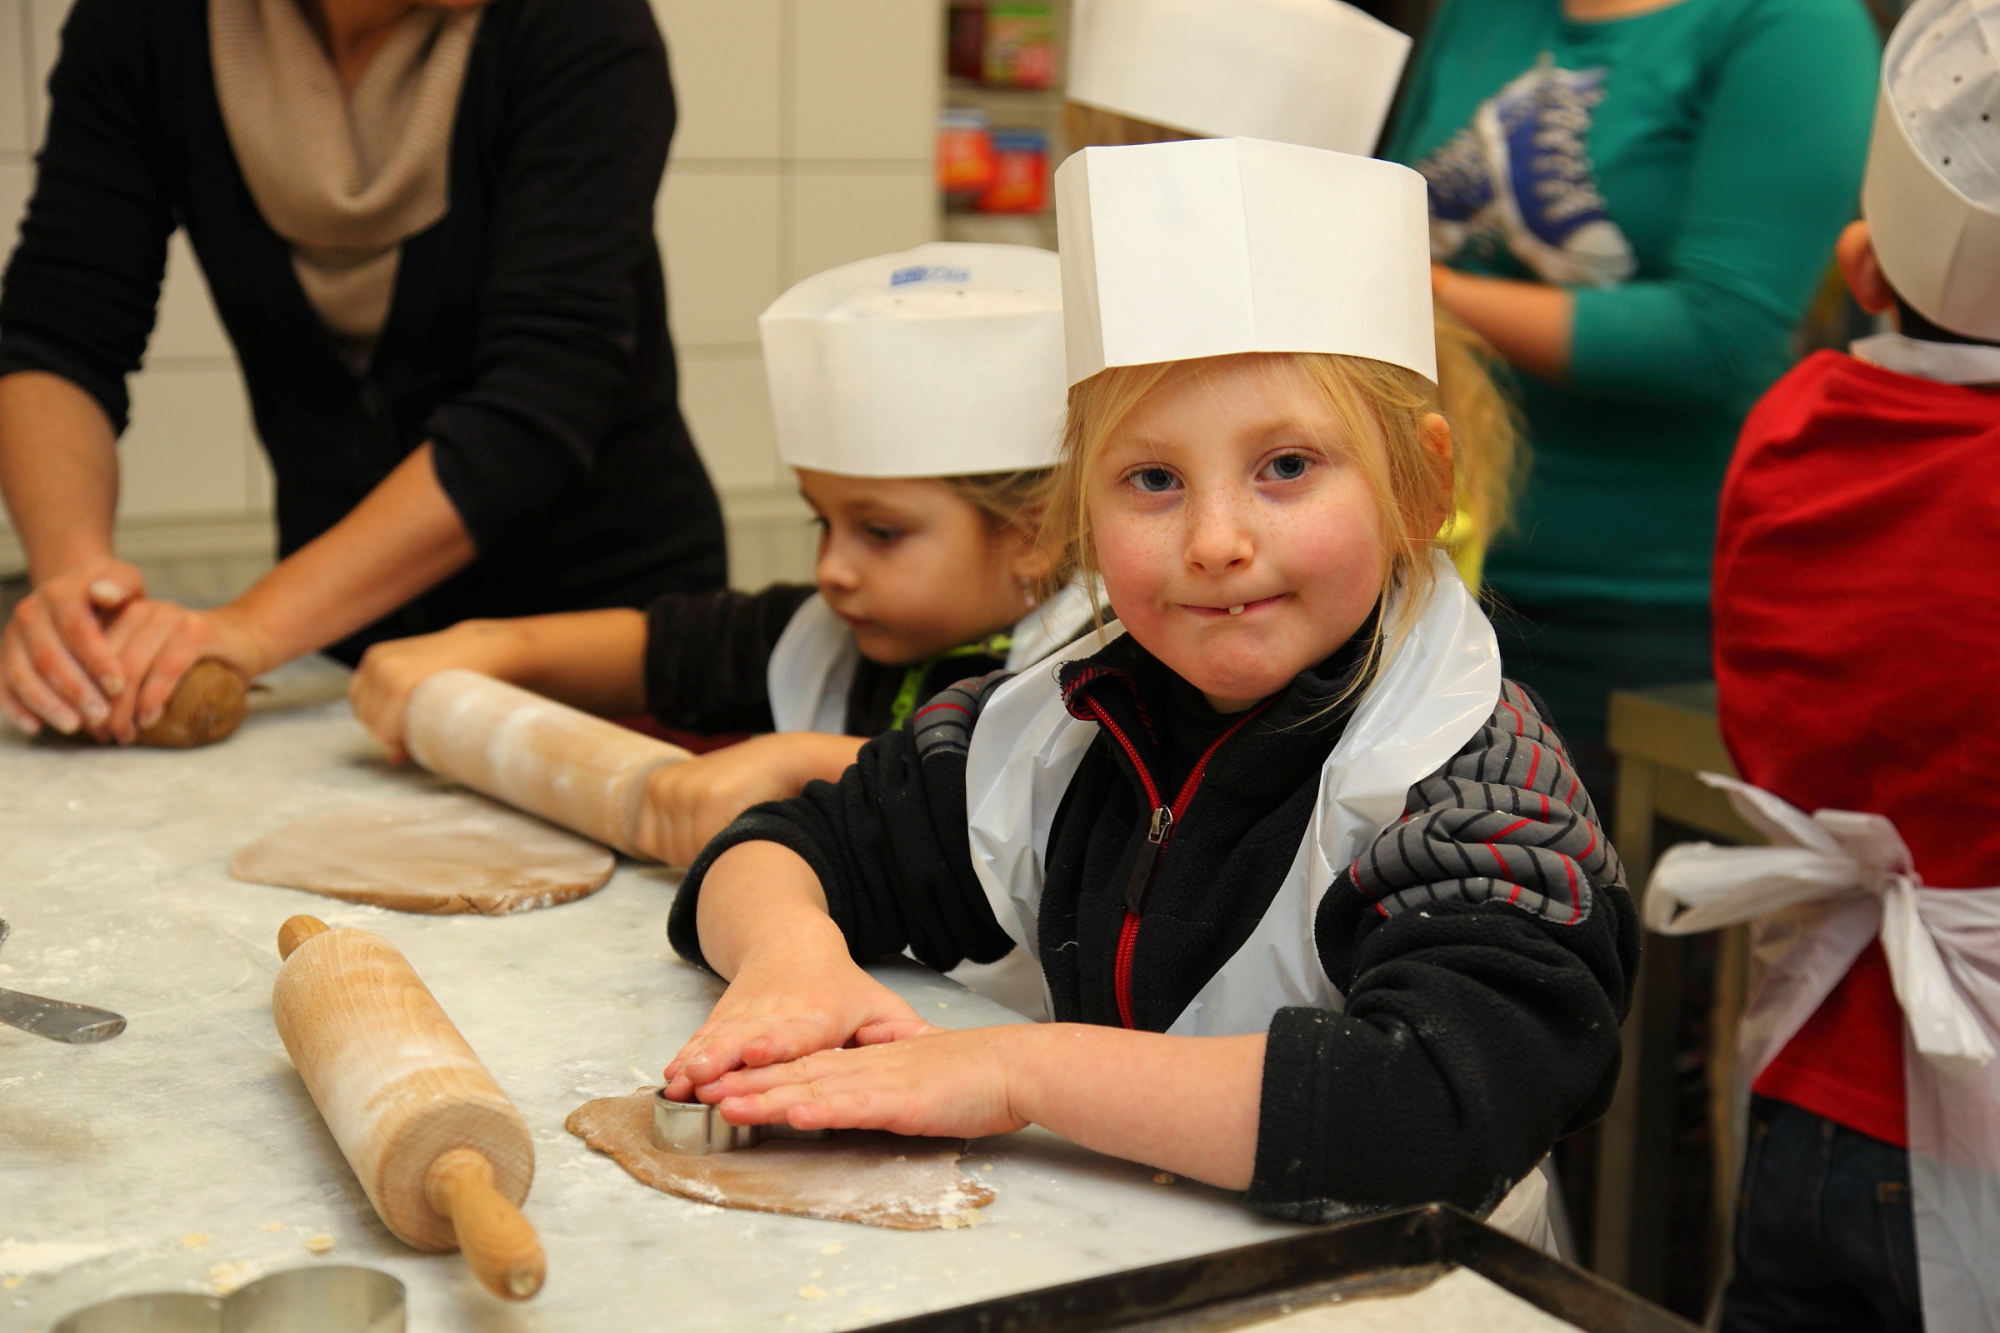 Baking for kids at the advent market in Grossarl